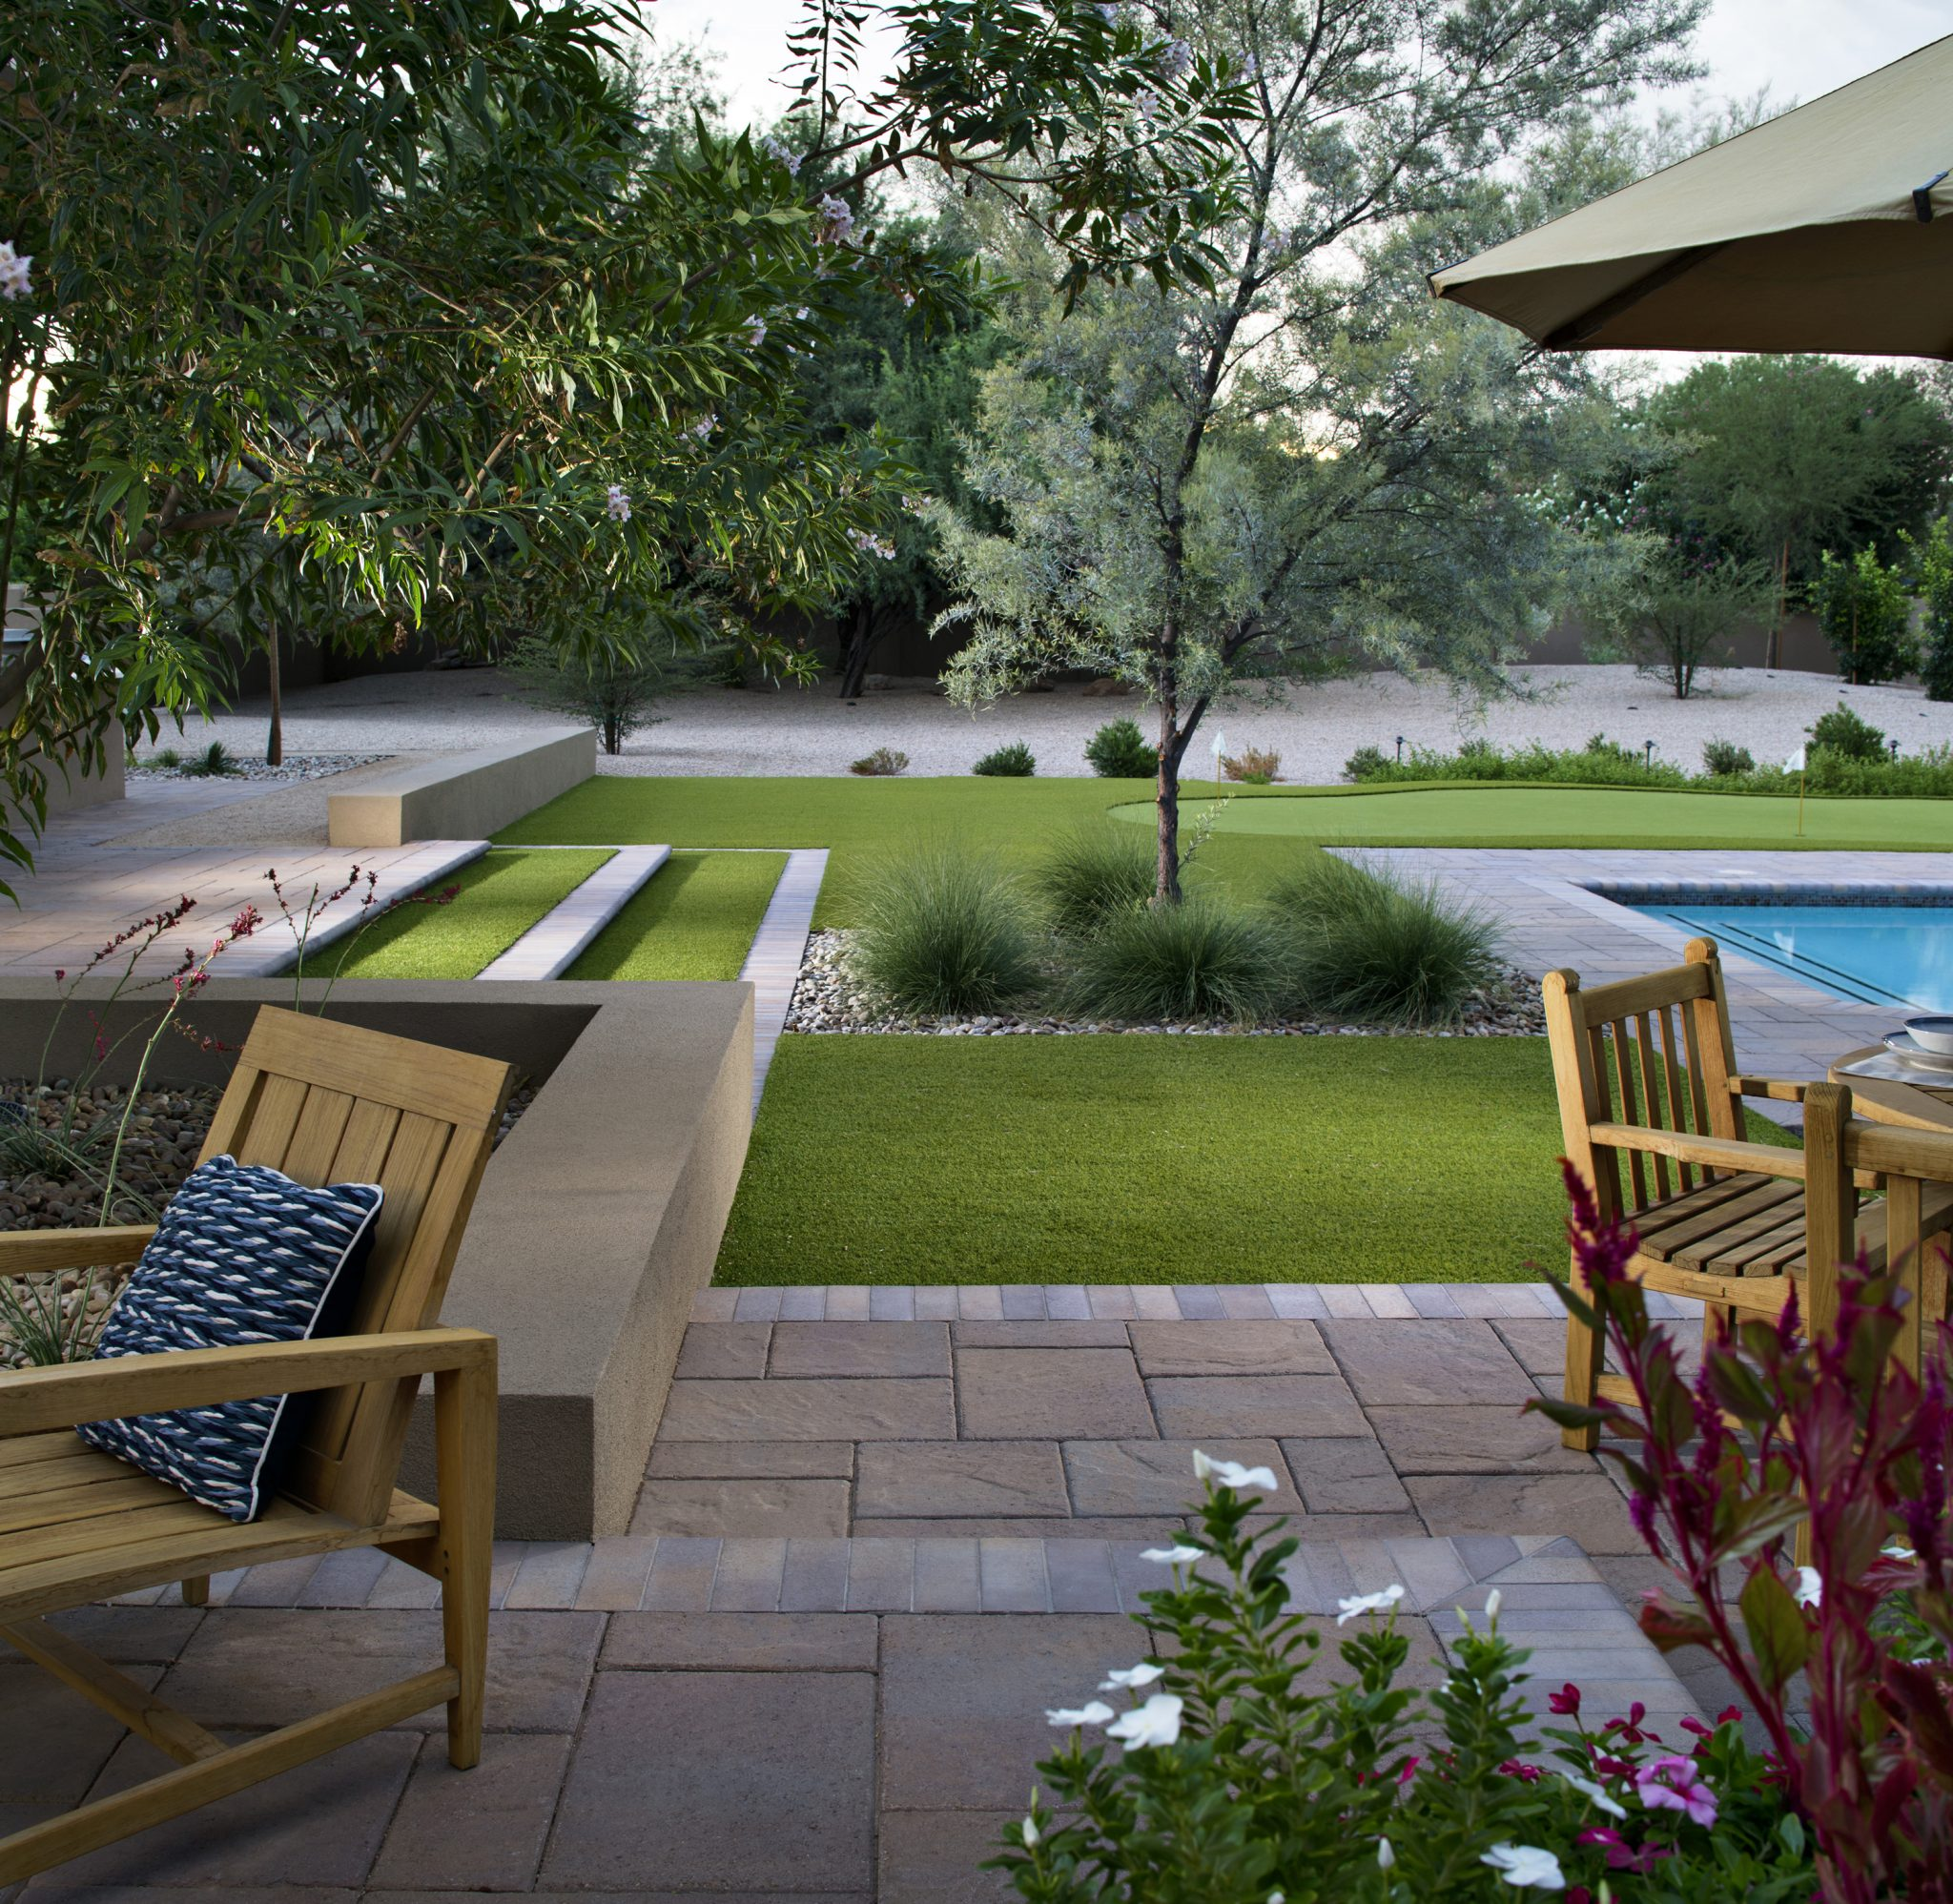 Alternatives To Grass In Backyard: Lawn Replacement Options